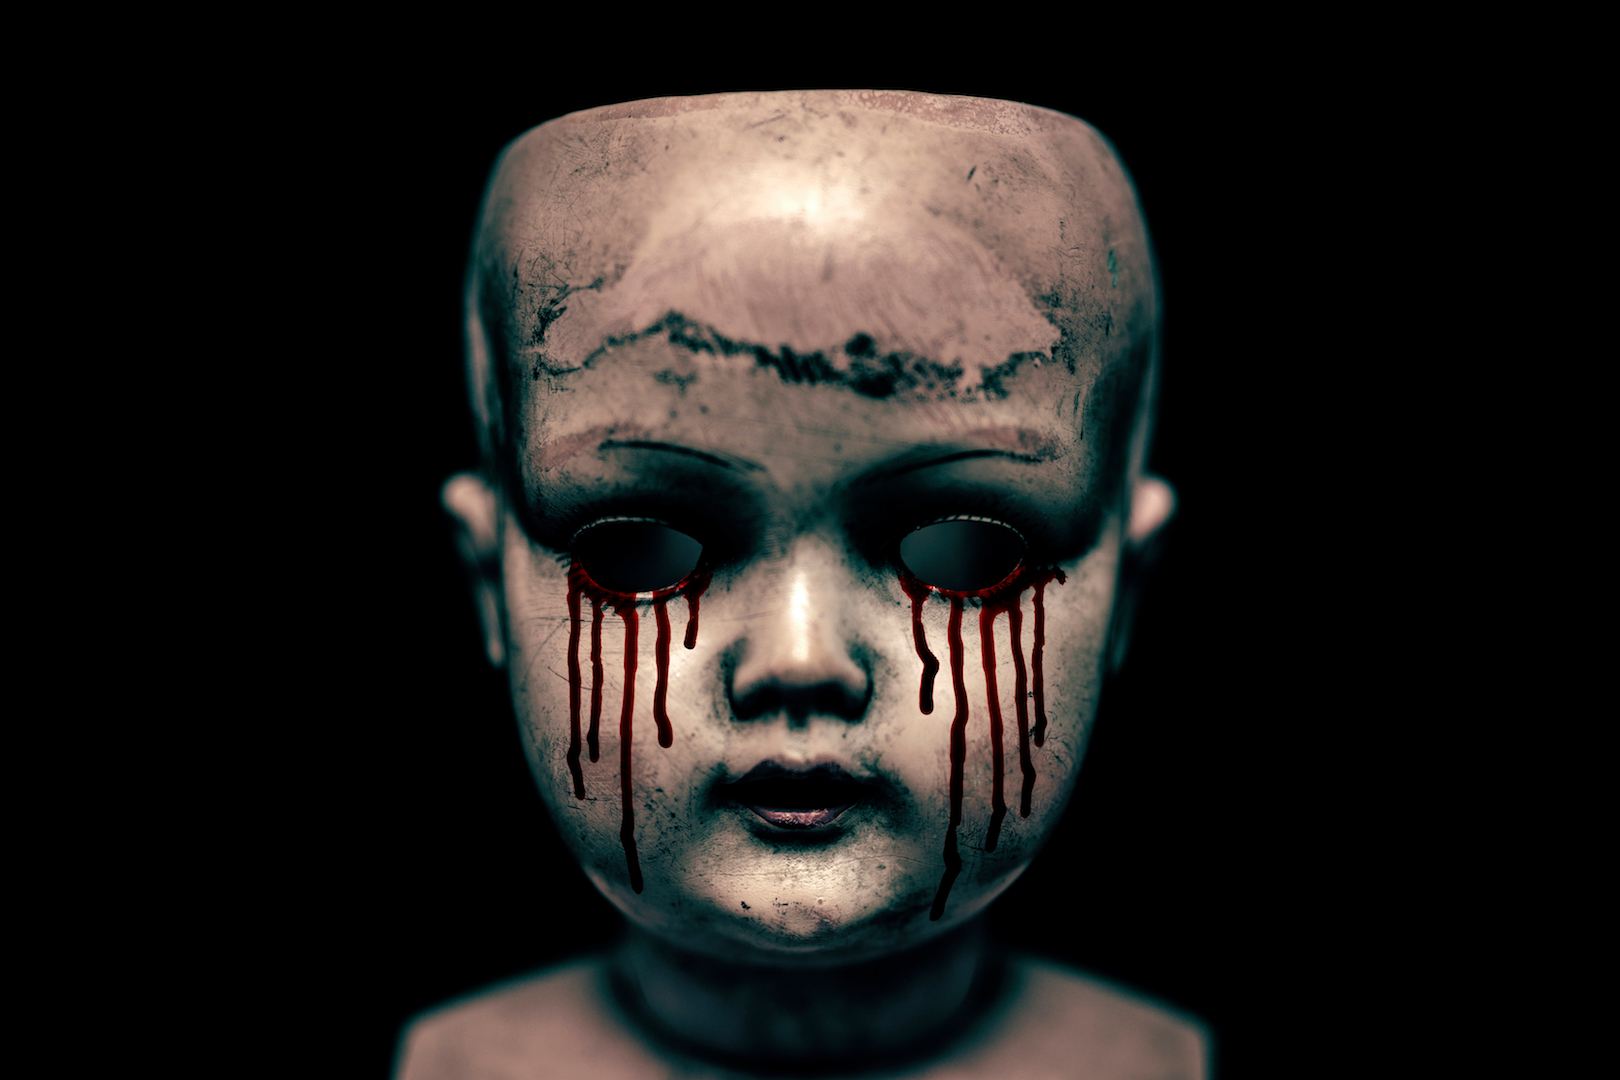 Creepy doll head with tears of blood dripping from its black eye sockets.